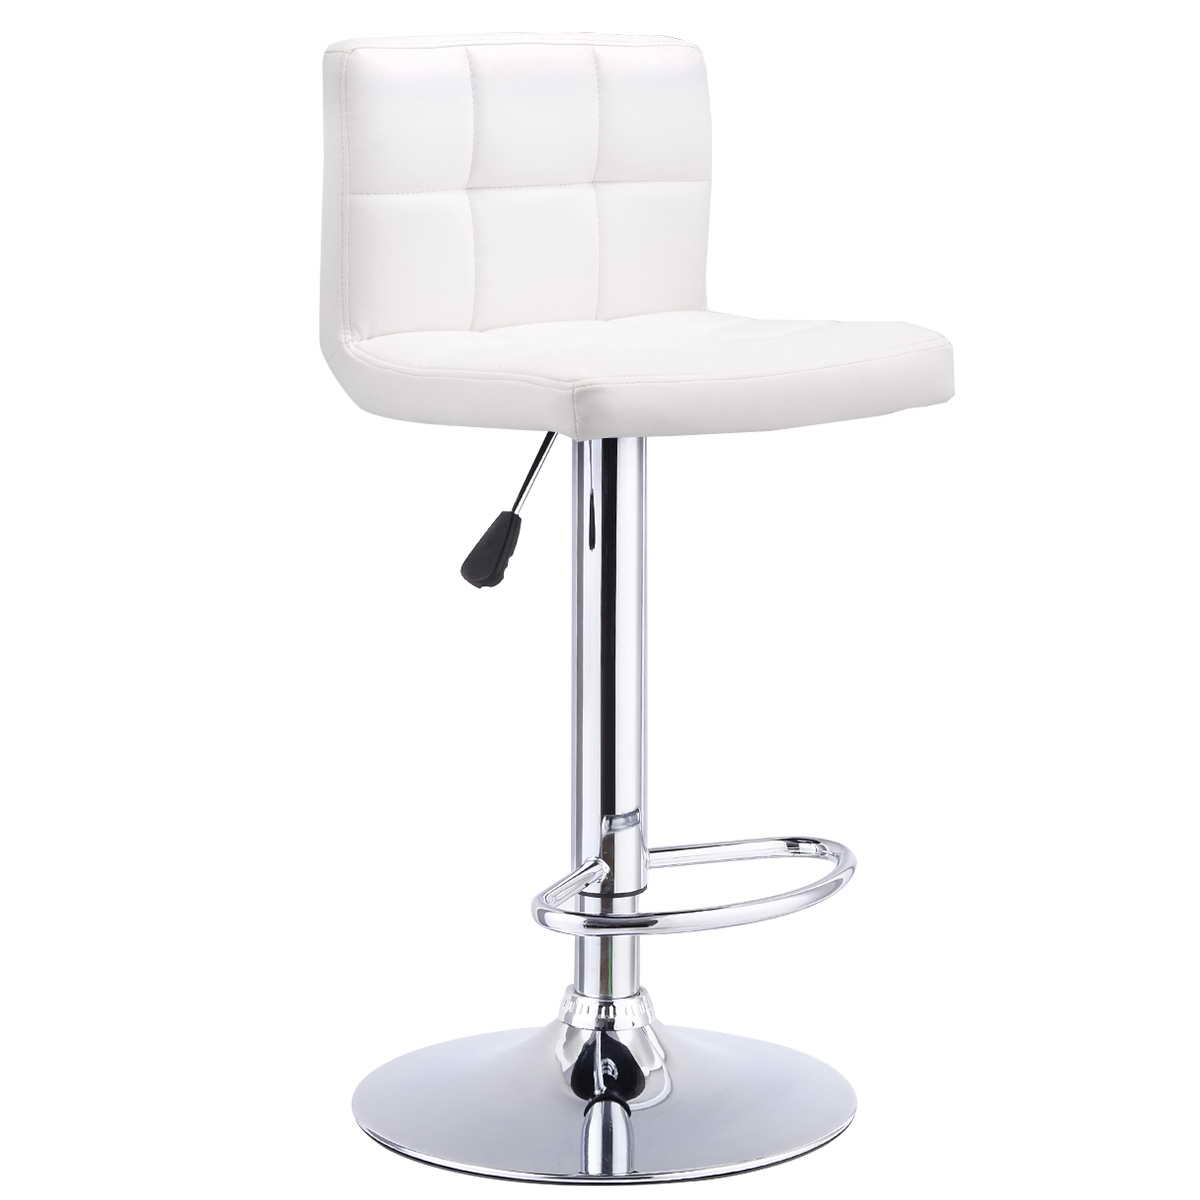 Sokoltec Bar Chair Fashion High Quality Office Spin Chair Synthetic Leather Liftinghome Chair Free Shipping From Moscow